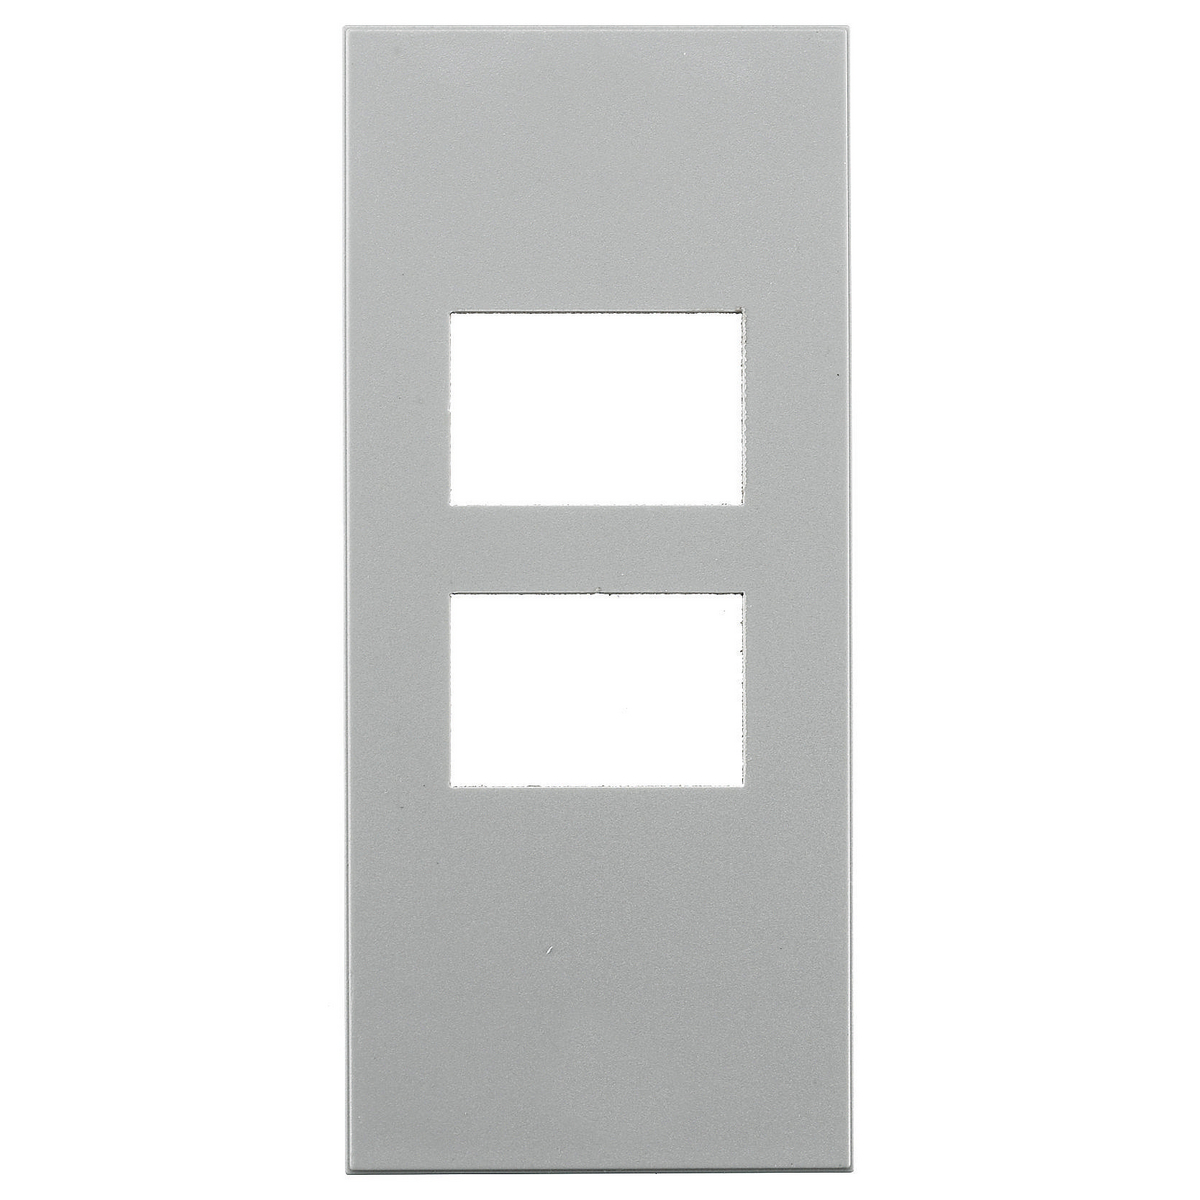 Hubbell HBLSI315GYFACEPLATE, SNAP-IN, SIEMON #2, GY